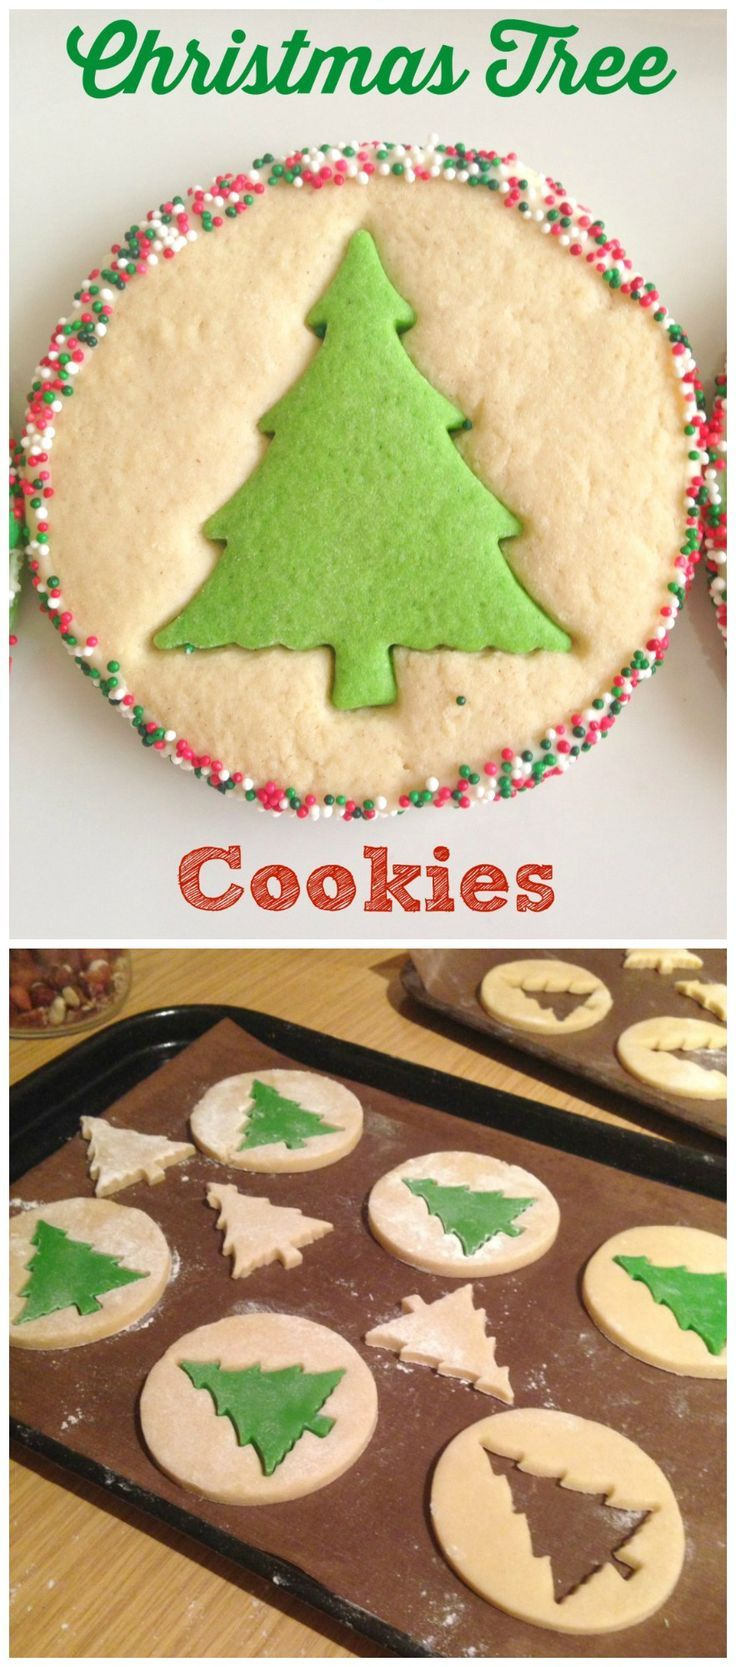 Christmas Tree Cookies #christmastreeideas